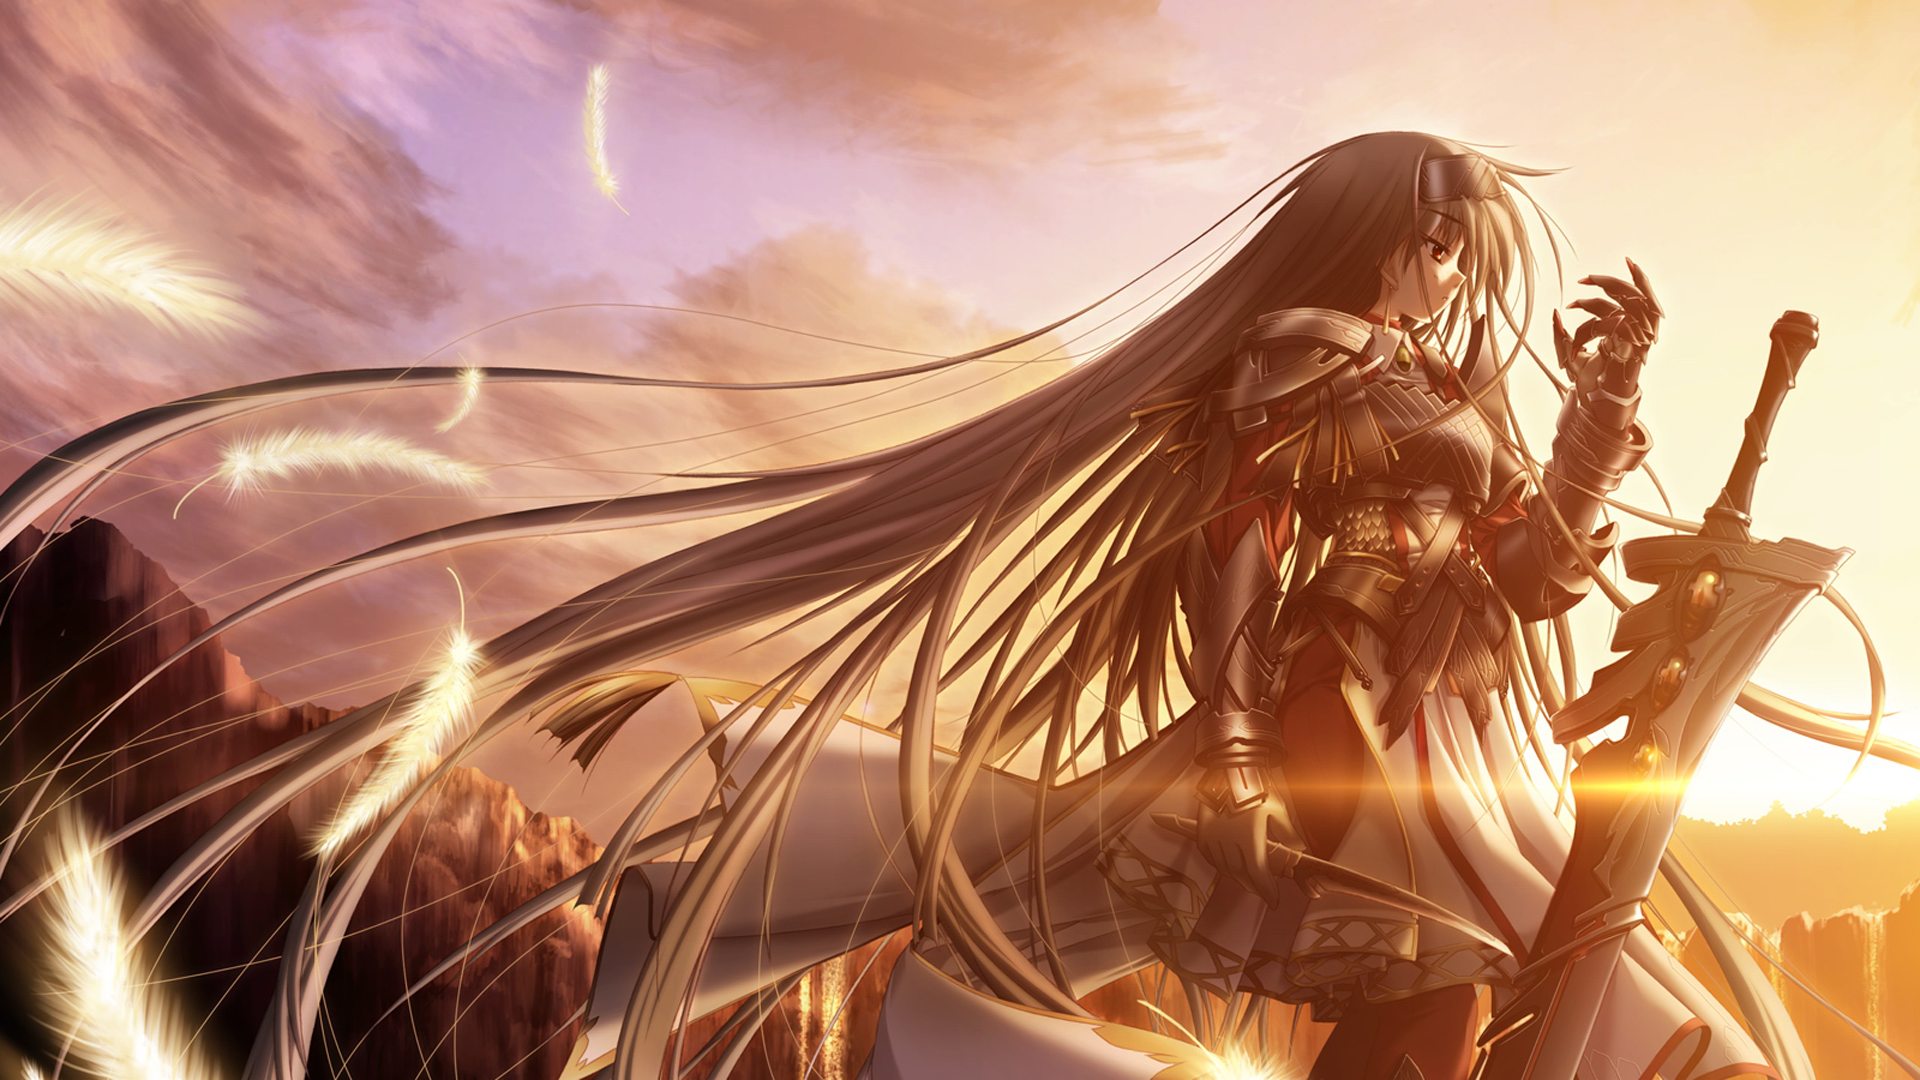 Wallpaper Hd Anime Girl Dark